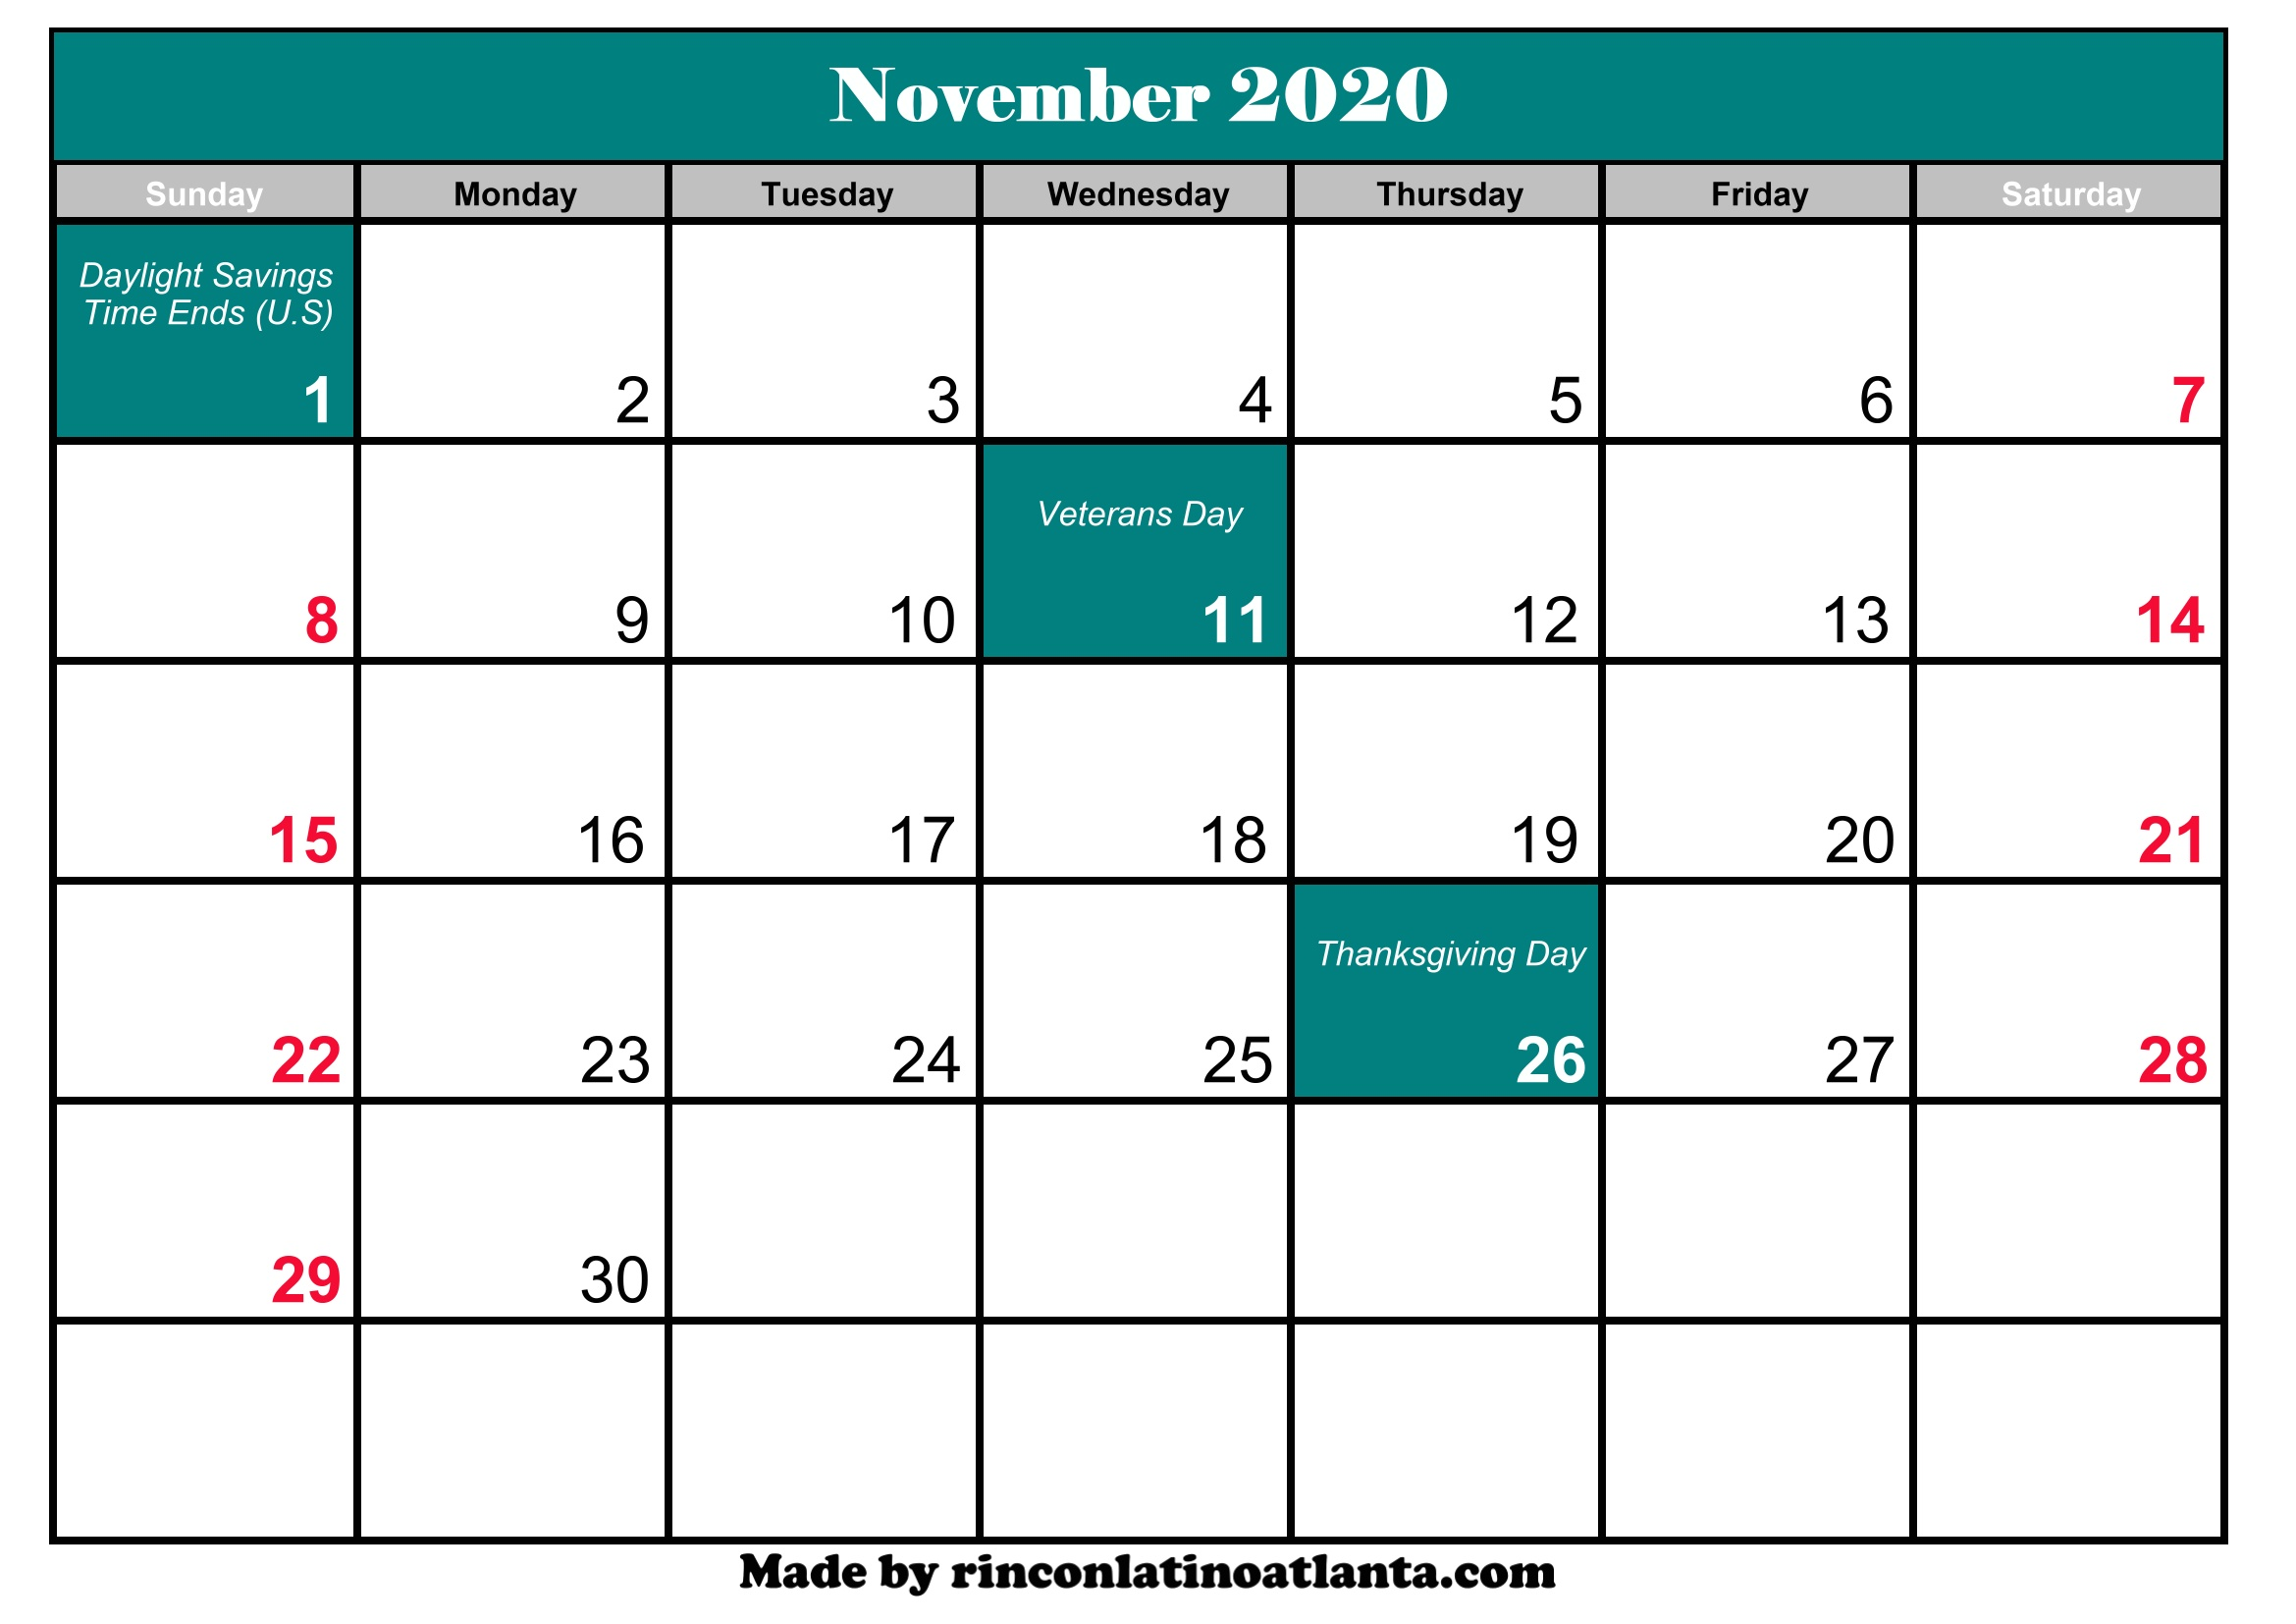 Nov 2020 Calendar With Holidays November 2020 Calendar With Holidays Printable | Calendar Template